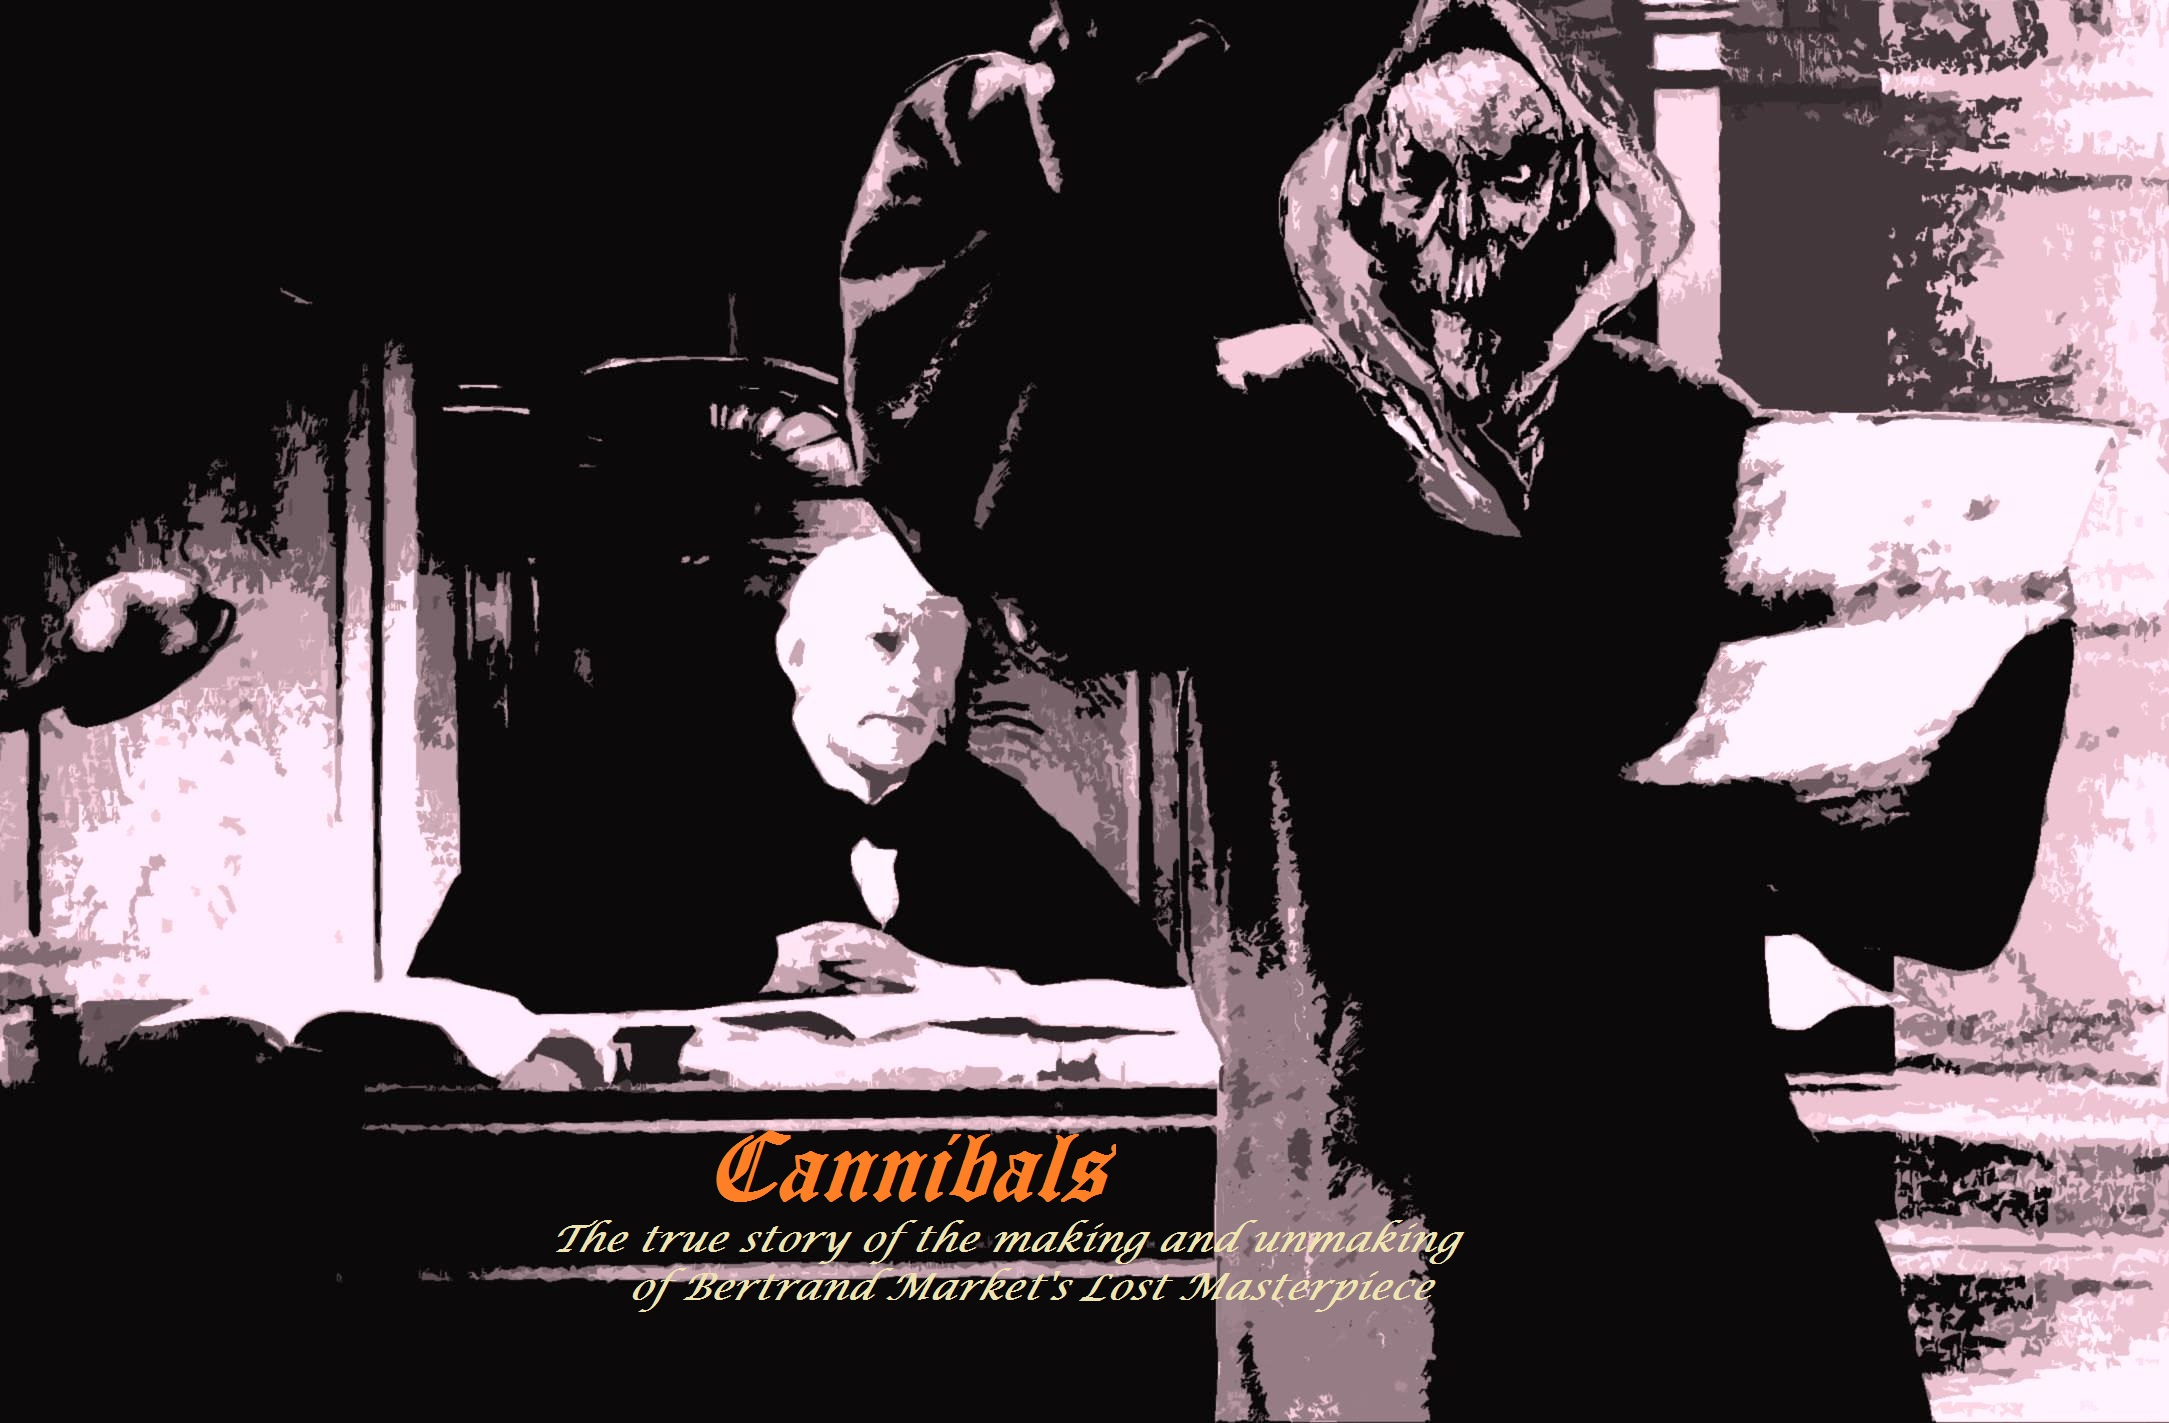 Cannibals- trial poster